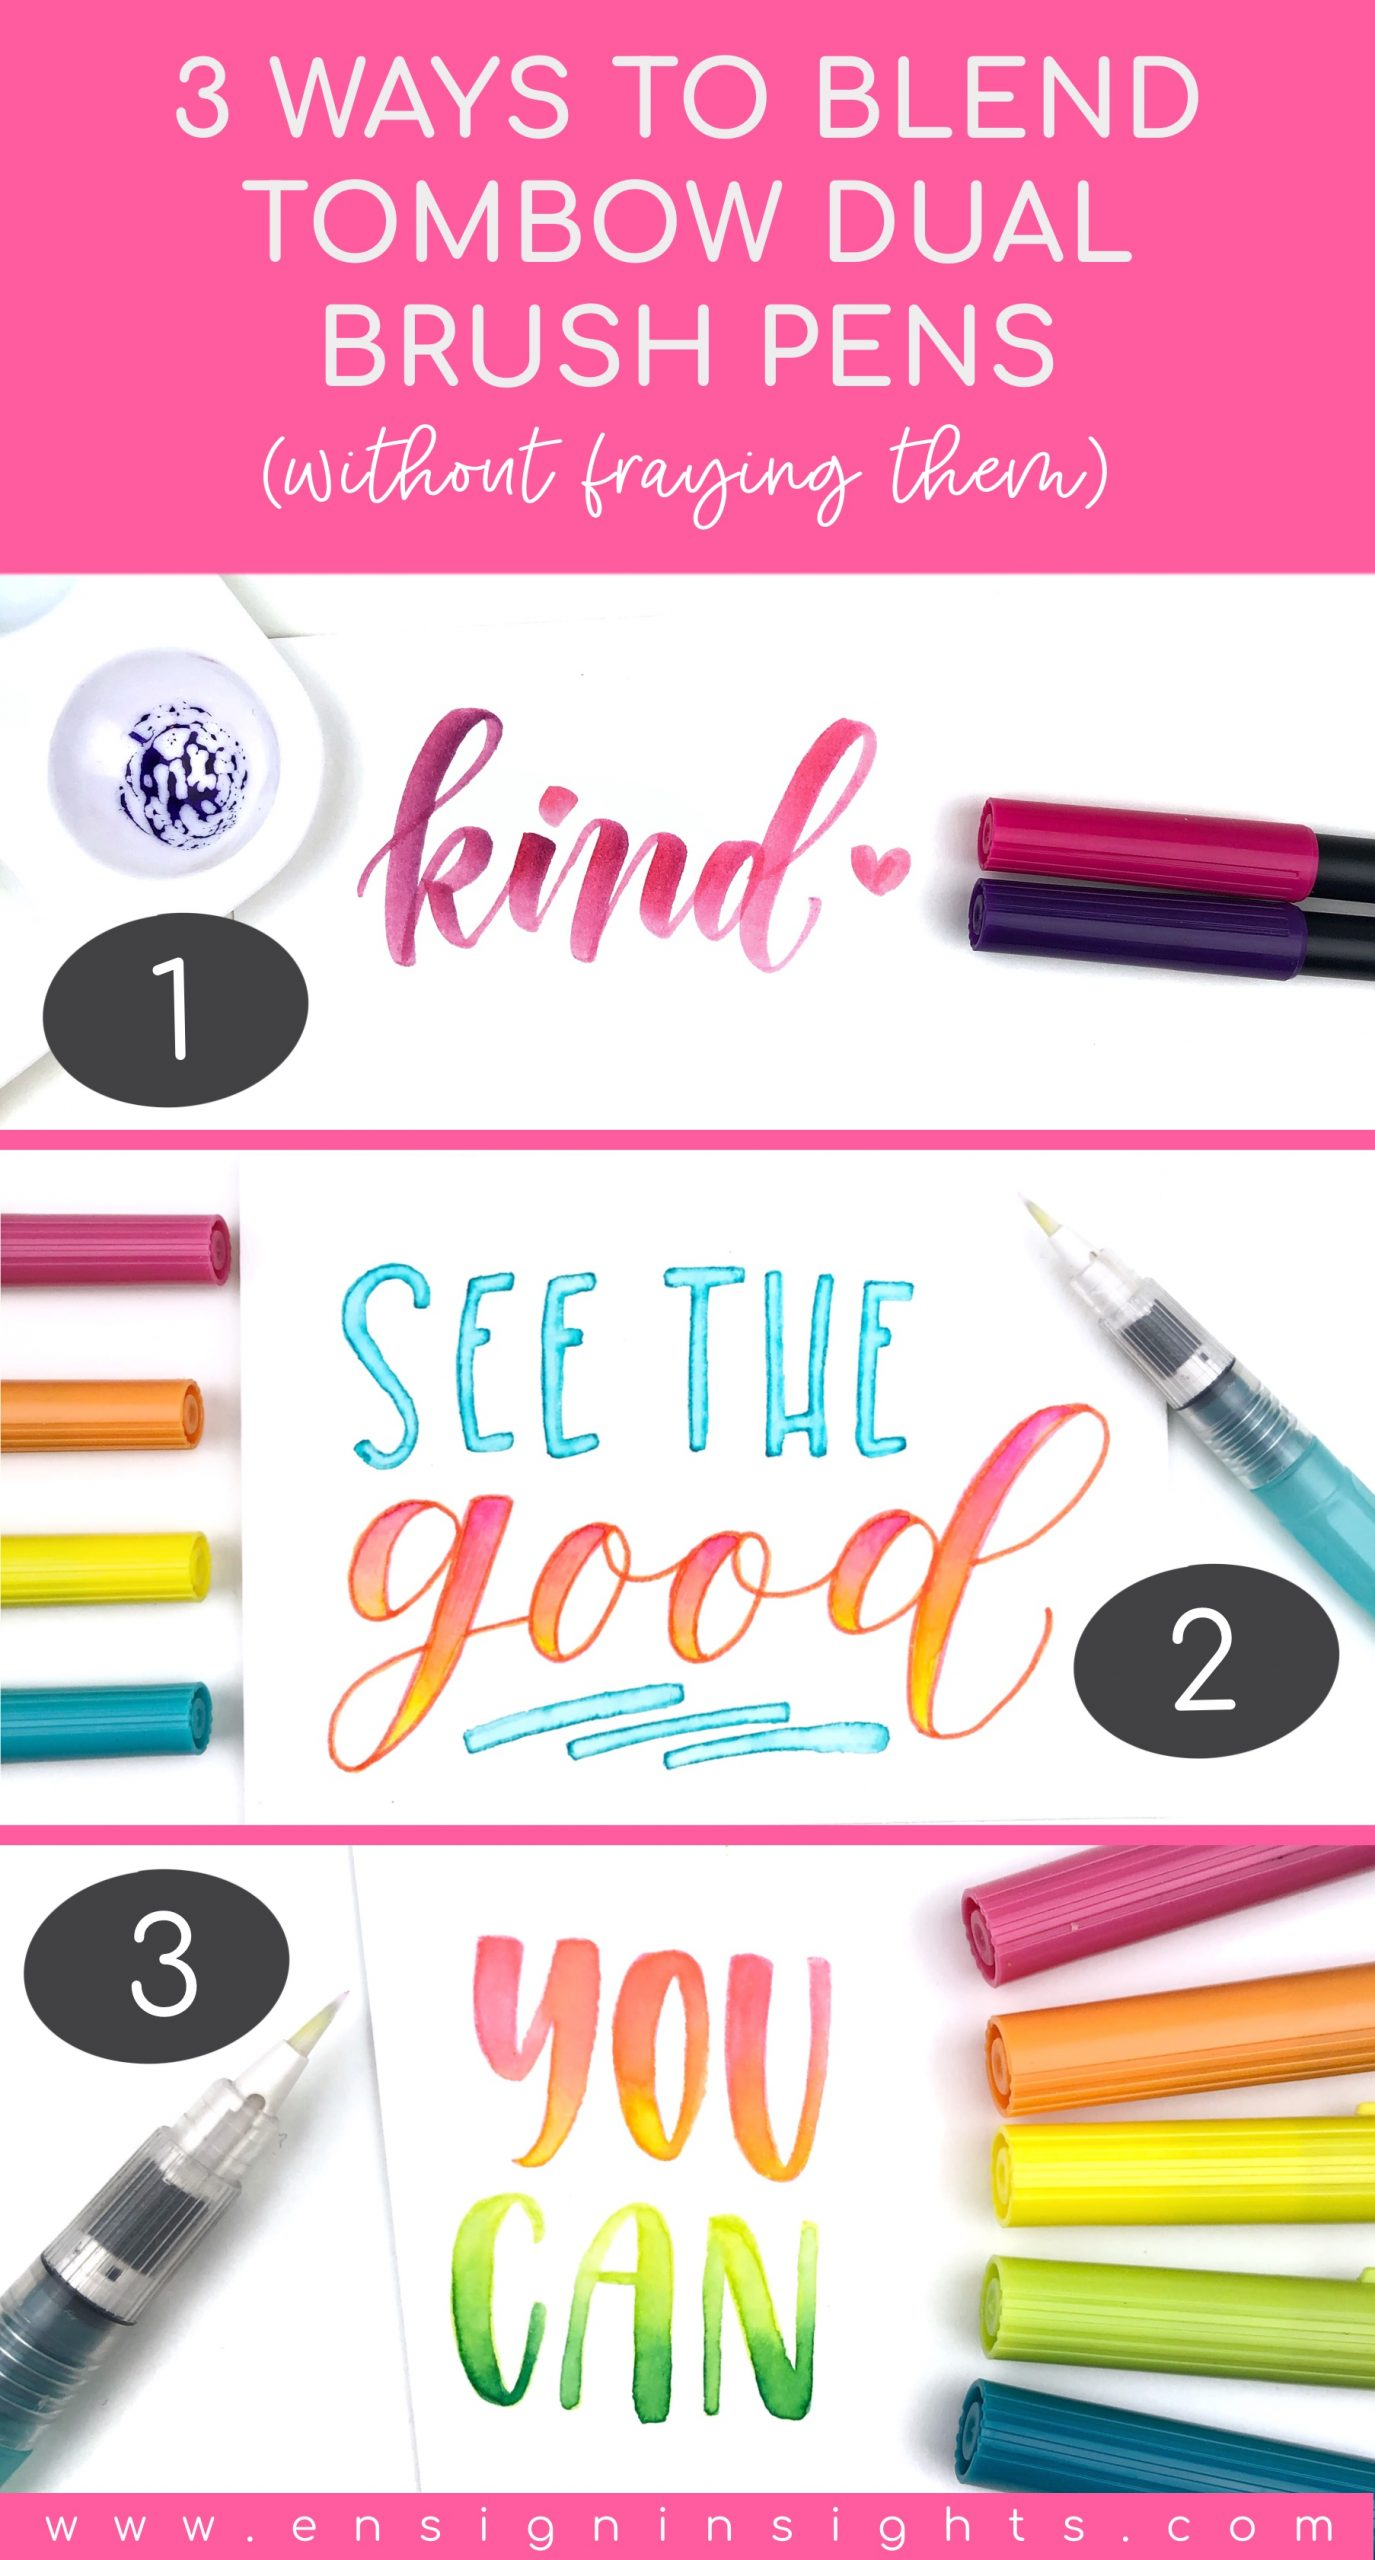 3 Ways to Blend Tombow Dual Brush Pens